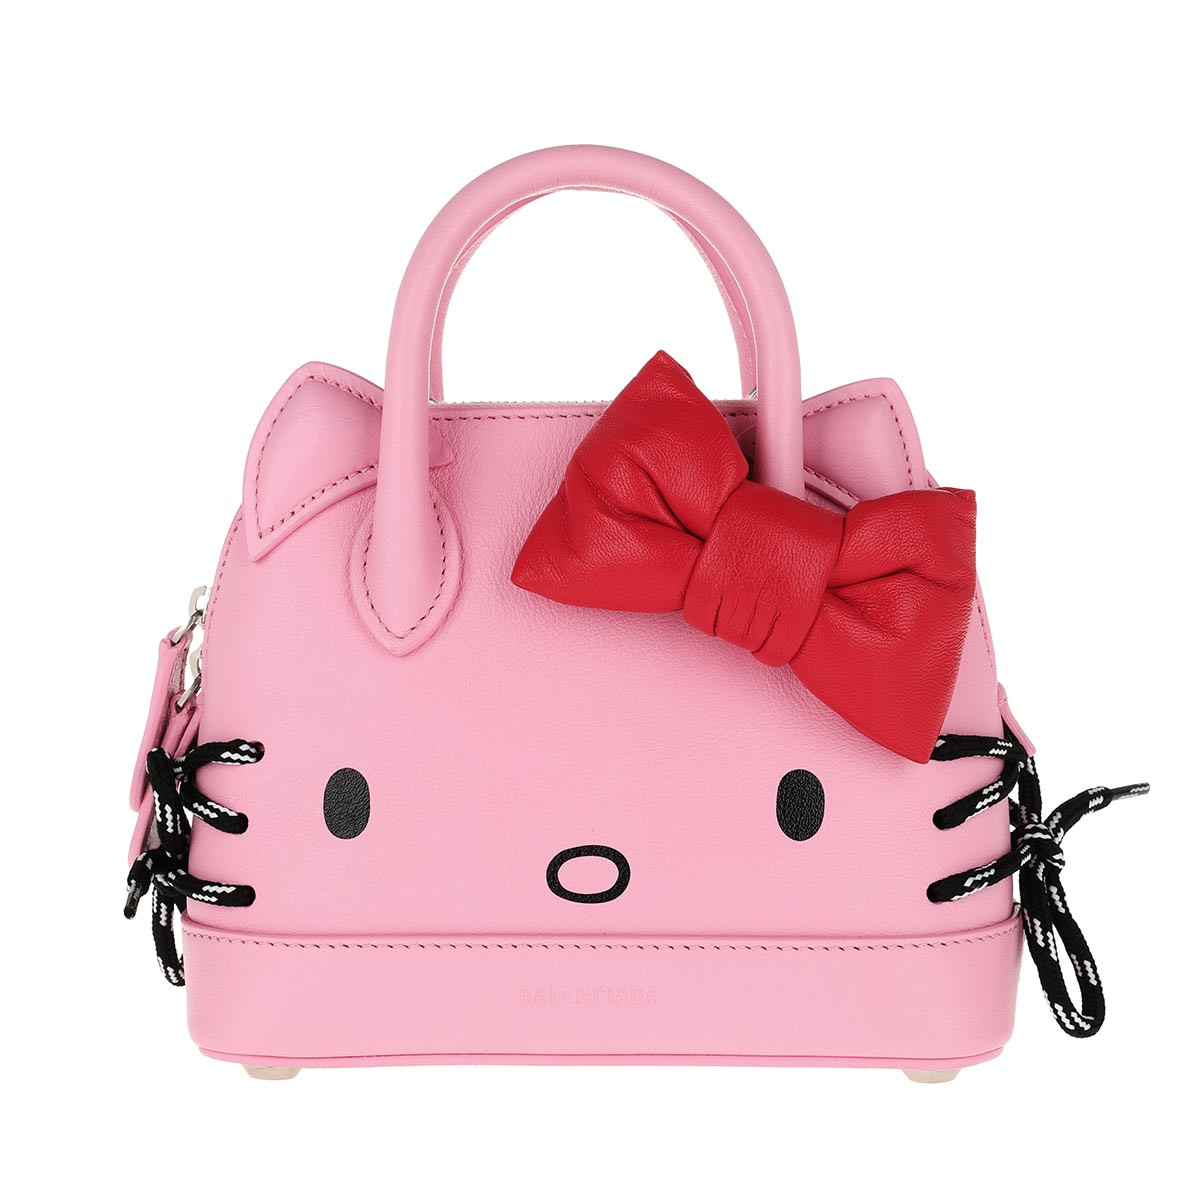 Balenciaga Umhängetasche - Kitty XXS Top Handle Bag Pink - in pink - für Damen